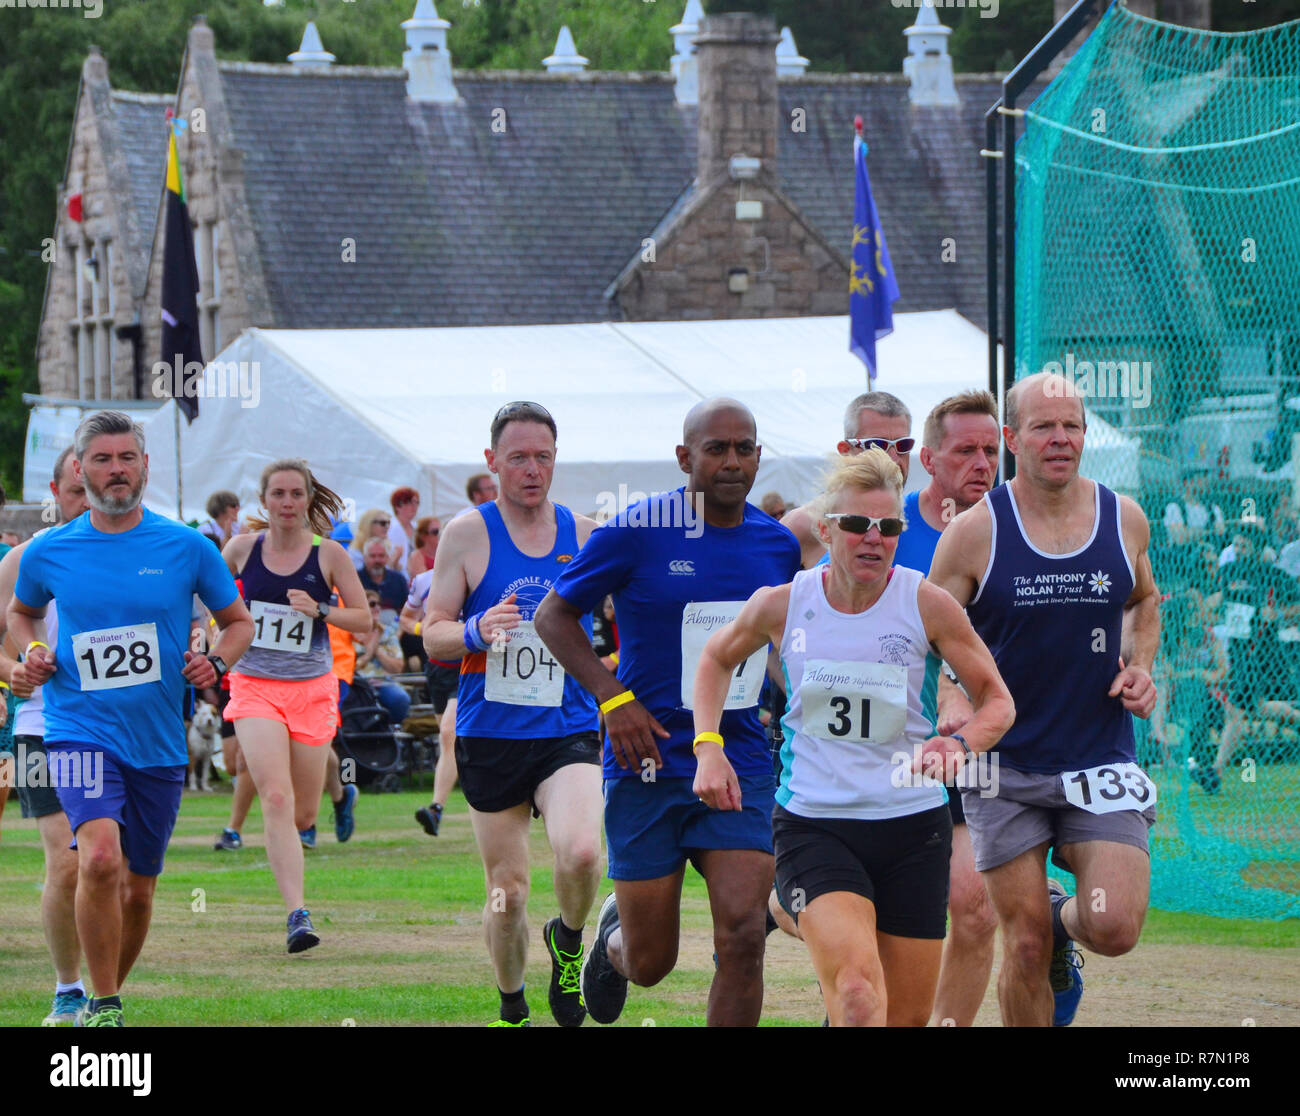 Runners returning from the hill race event at the Aboyne highland games, scotland. - Stock Image